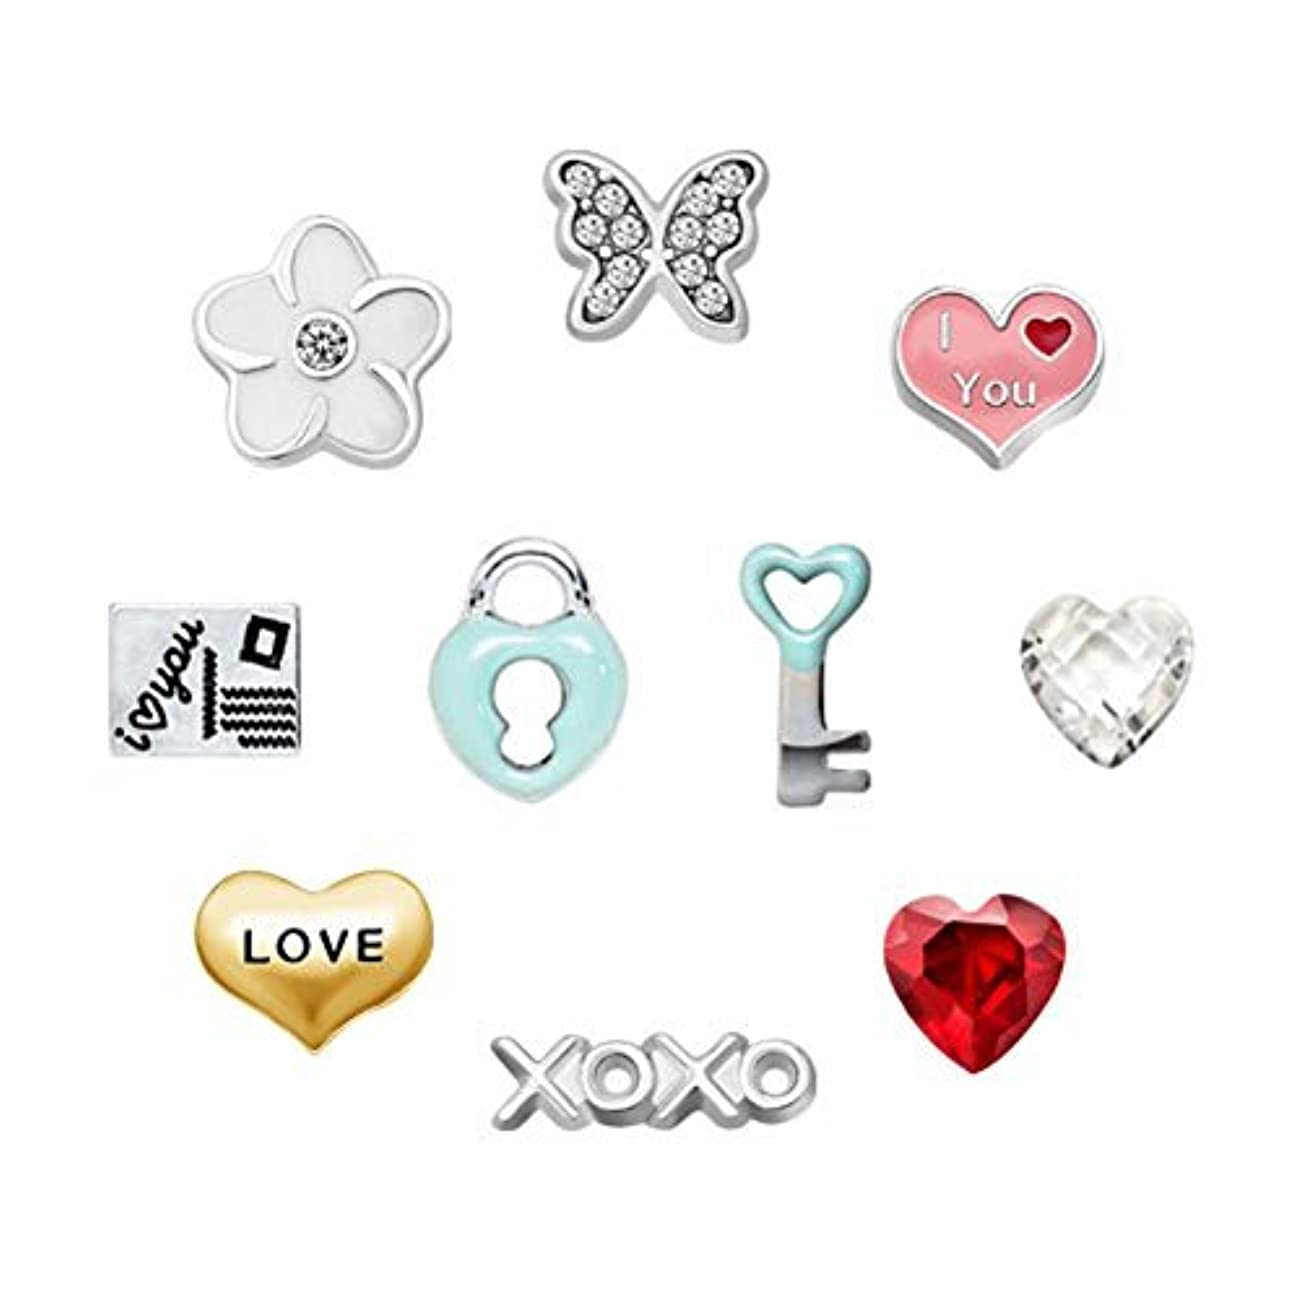 Q&Locket 10Pcs Love You Key Lock Floating Charms For Glass Living Memory Locket Necklace Bracelets